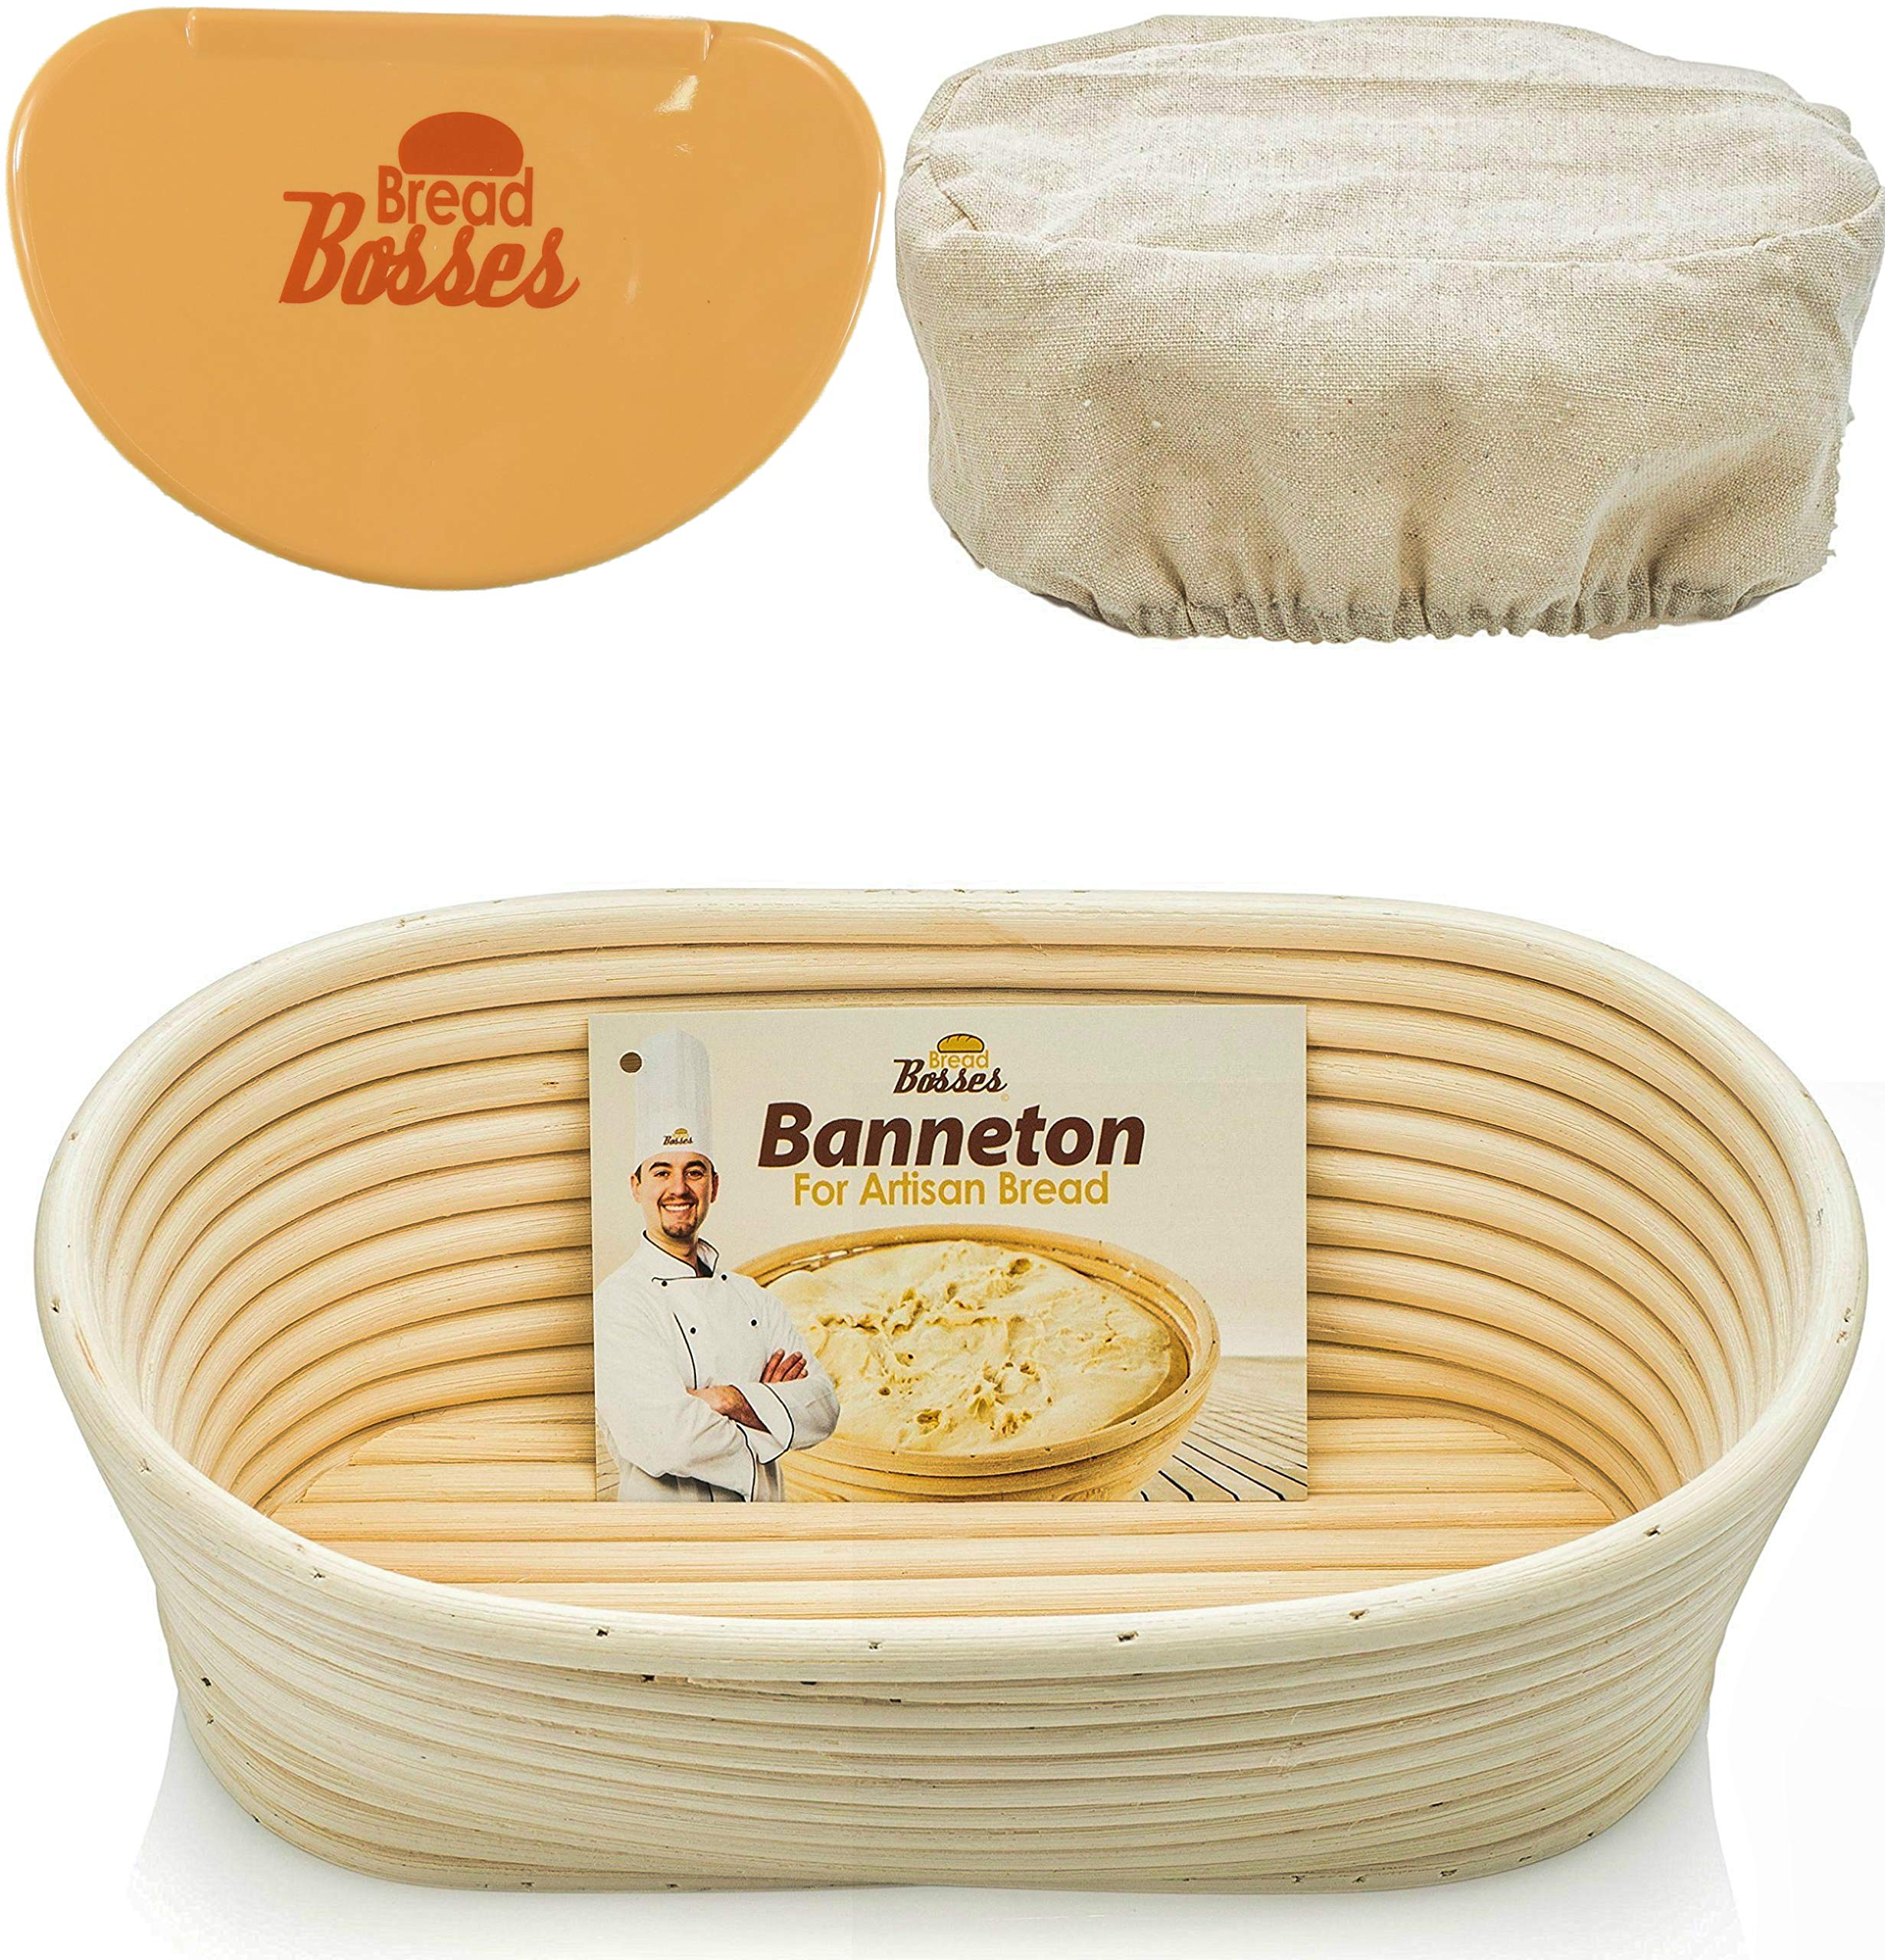 10 Inch Oval Banneton Proofing Basket - Sourdough Bread Proving Baskets w/Bowl Scraper, Brotform Cloth Liner, Starter Recipe for Baking - Making Dough w/Rising Bannetons Banetton Benneton Proof Set